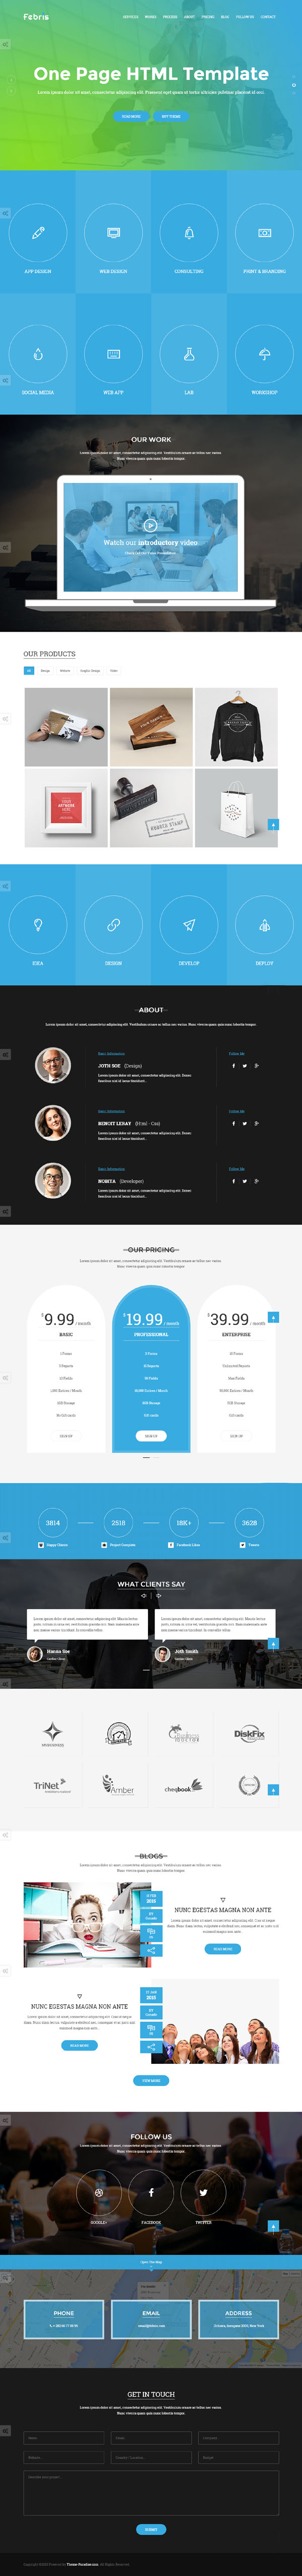 Febris | Porfolio, Corporate One Page HTML Template